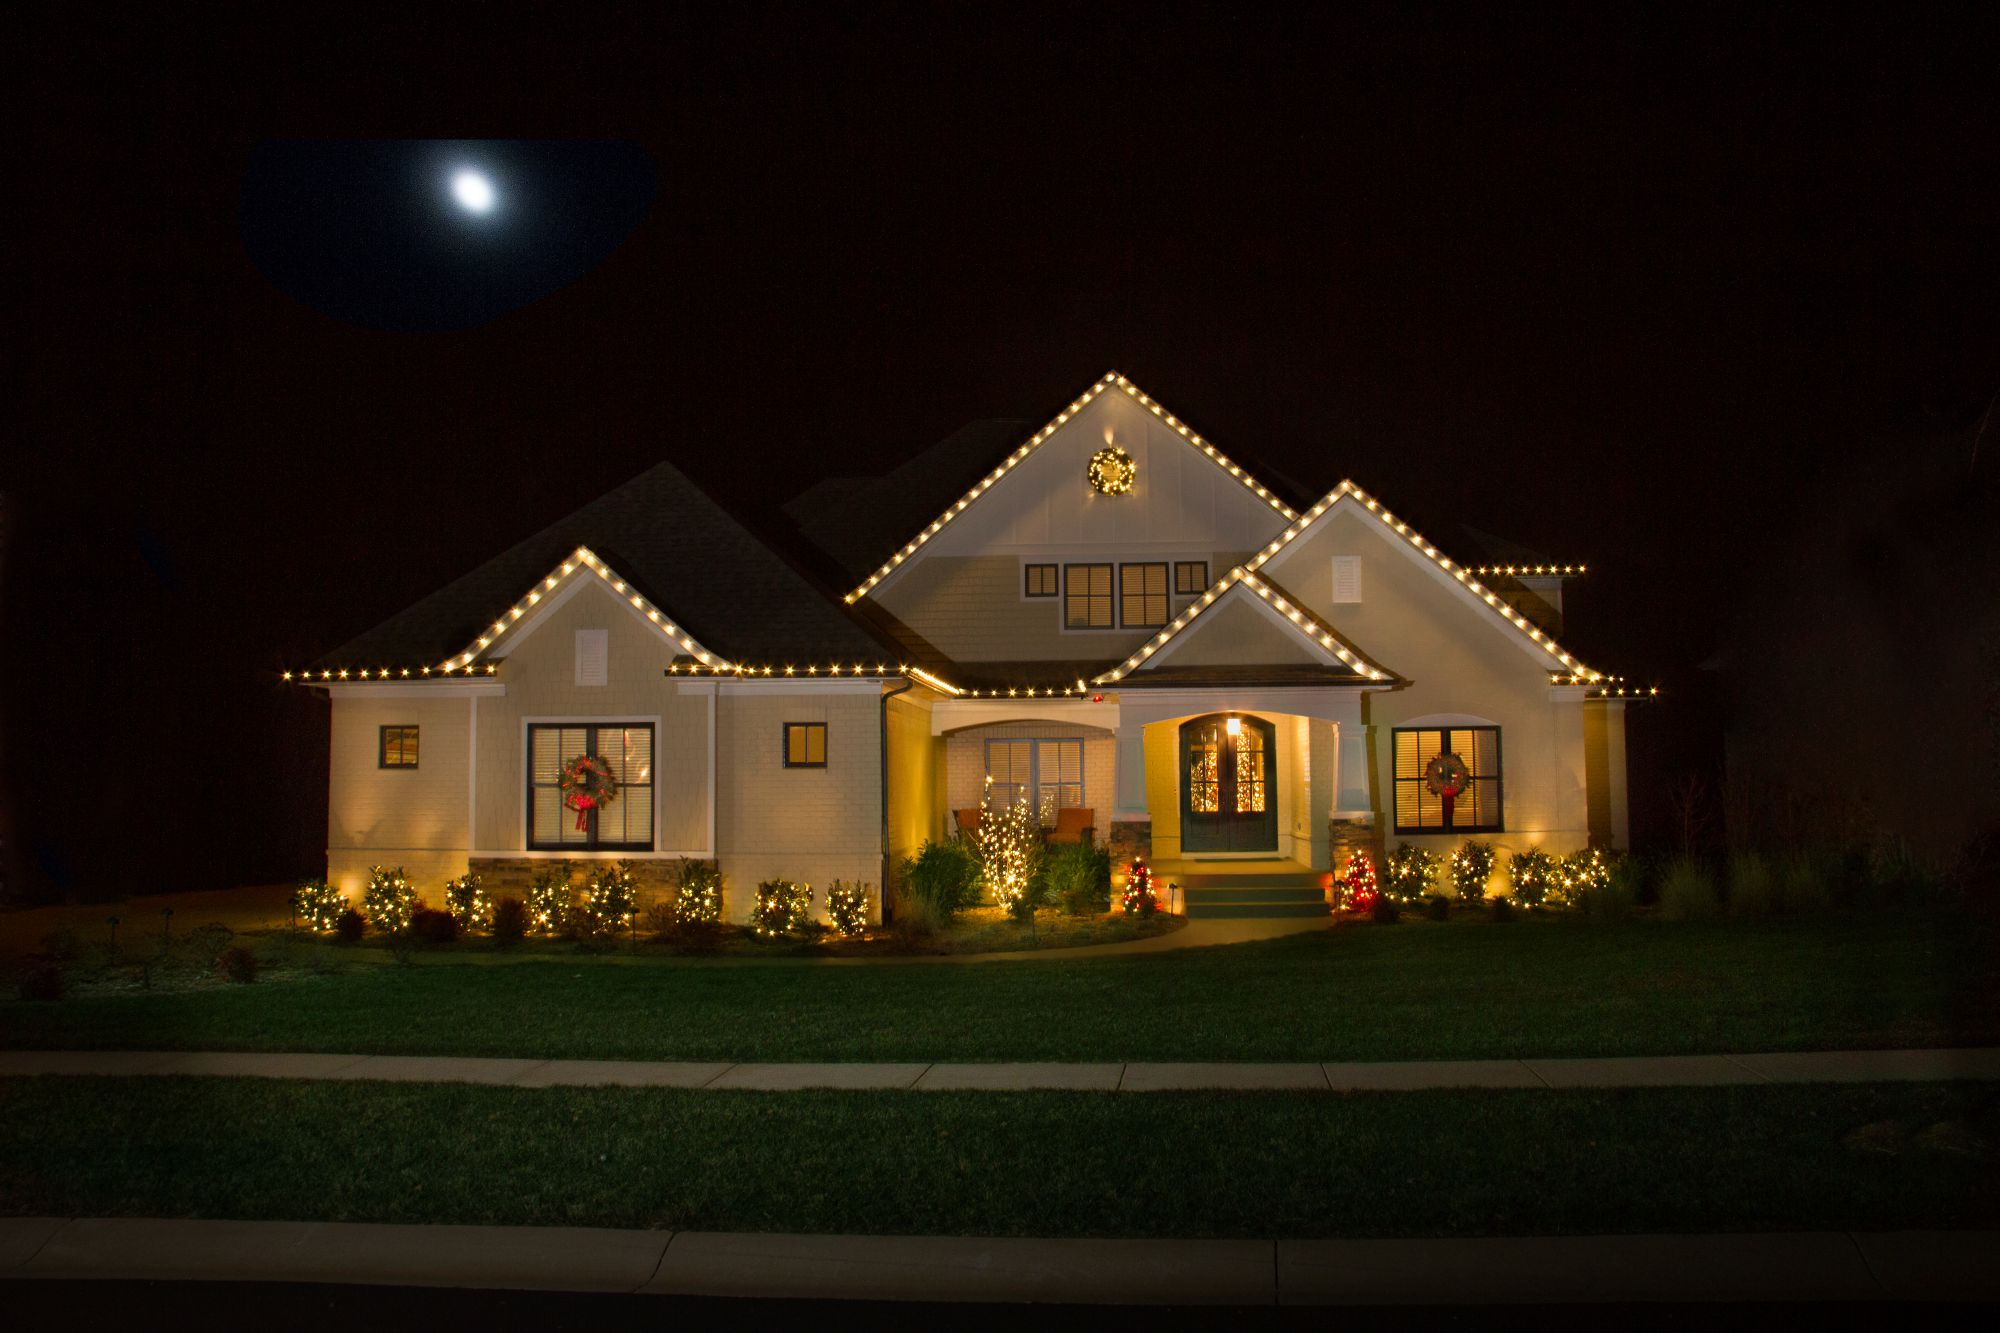 Christmas lights as decoration year round - Christmas Time Will Always Be The Most Popular Time Of The Year To Utilize Outdoor Lighting Decorations But Year Round Light Decorations Are Rapidly